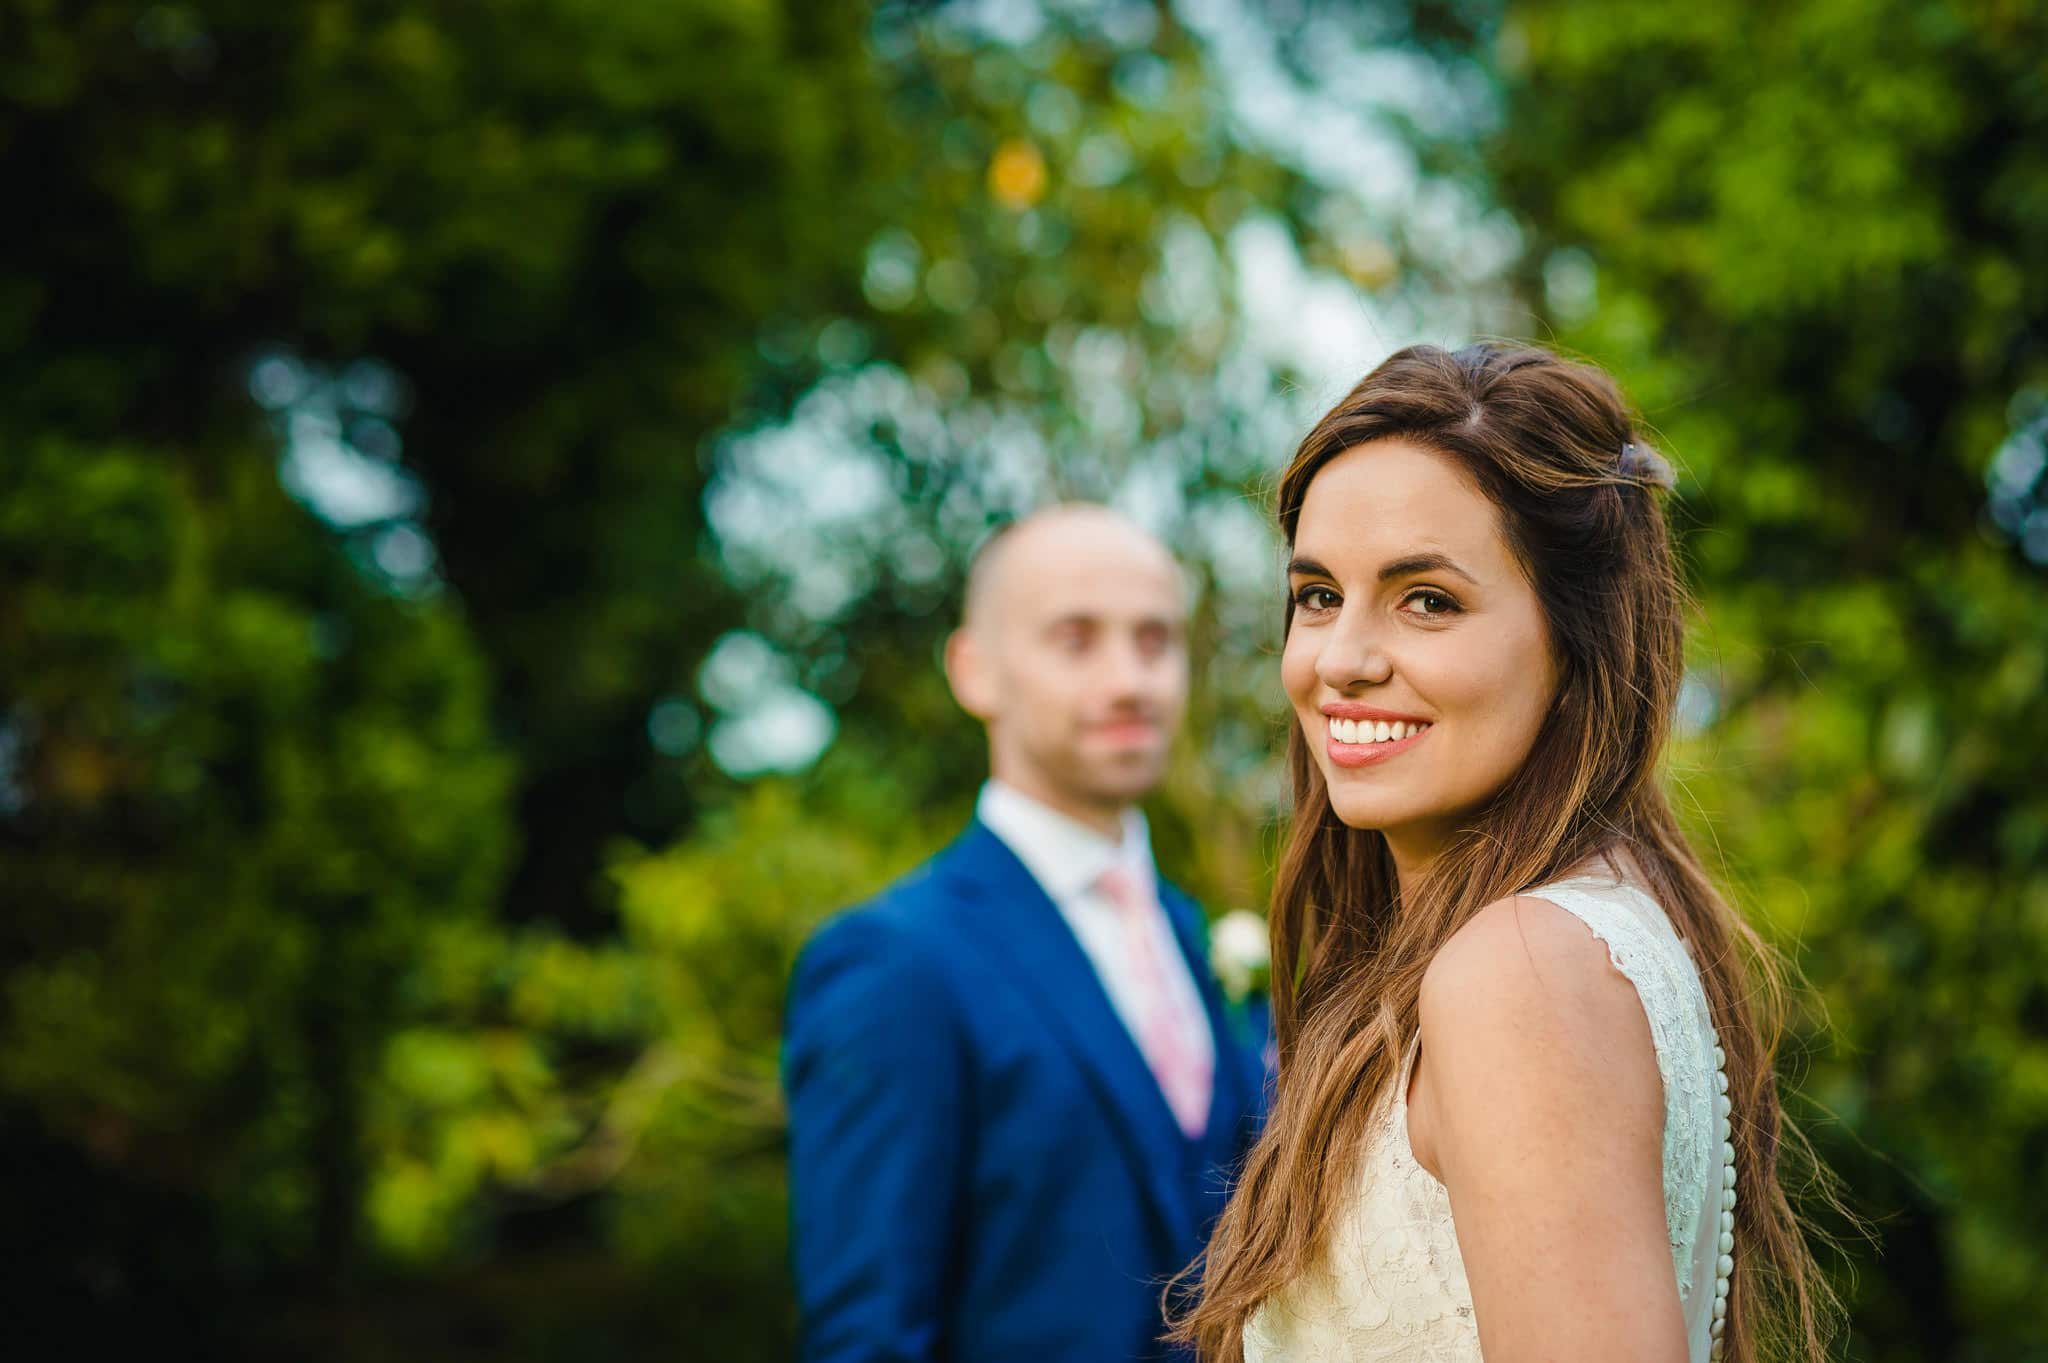 wedding at redhouse barn 194 - Wedding at Redhouse Barn in Stoke Prior, Worcestershire